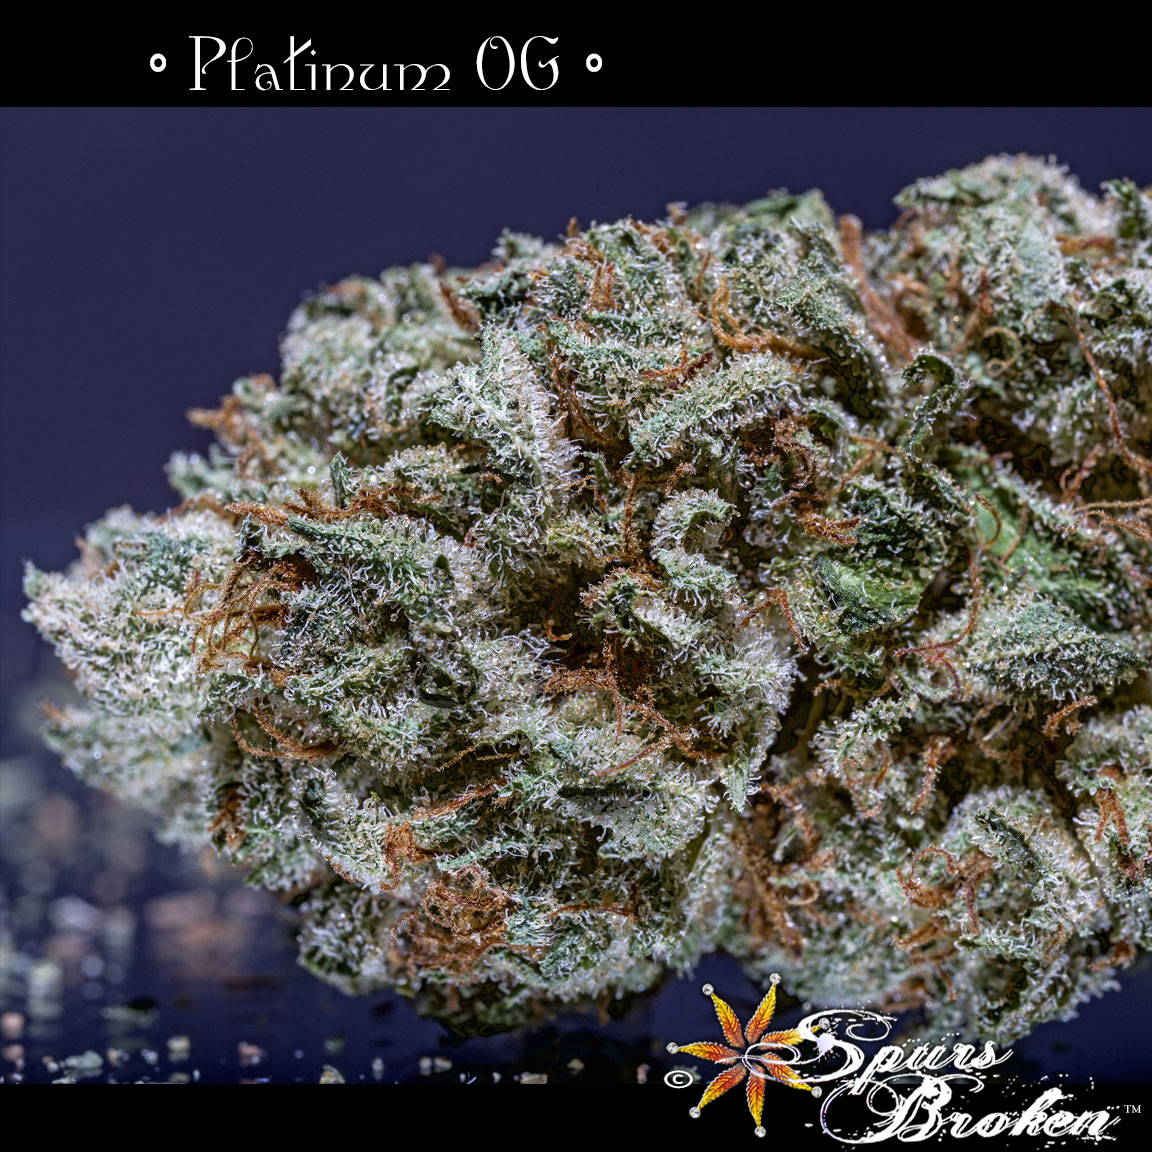 Platinum OG - Cannabis Macro Photography by Spurs Broken (Robert R. Sanders)